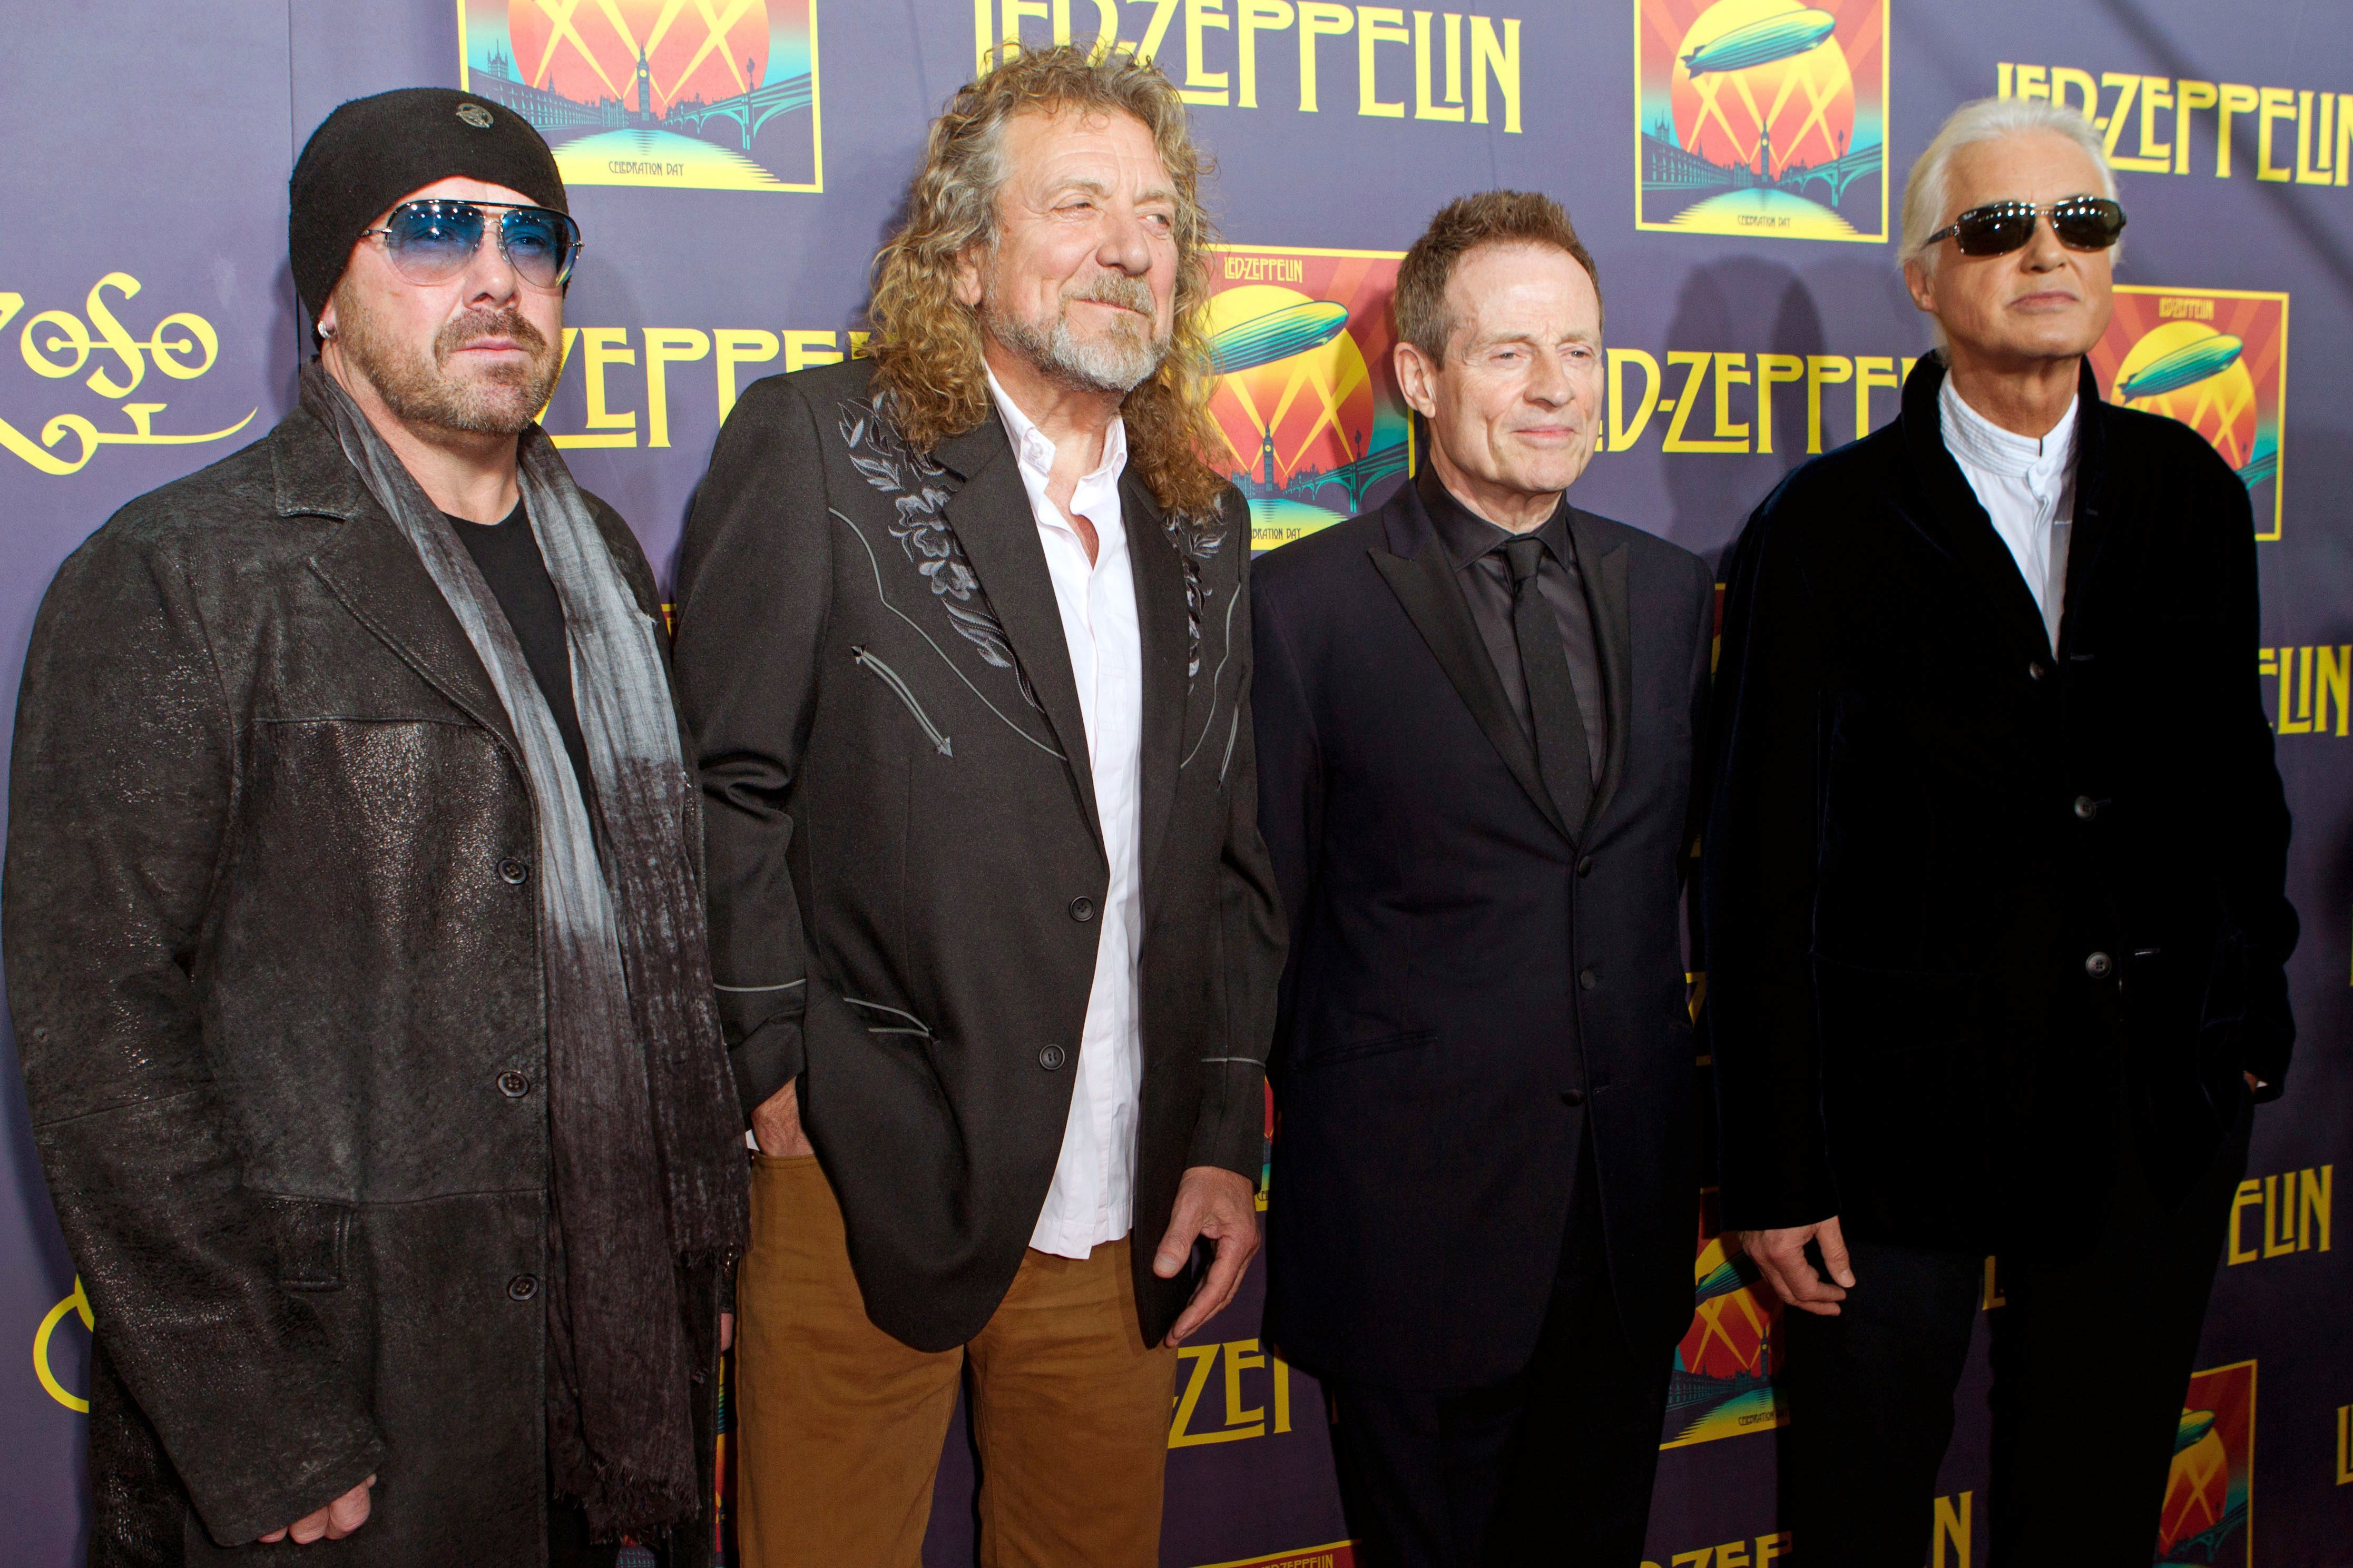 Led Zeppelin's 'Stairway to Heaven': Appeals Court to Review Lawsuit Decision